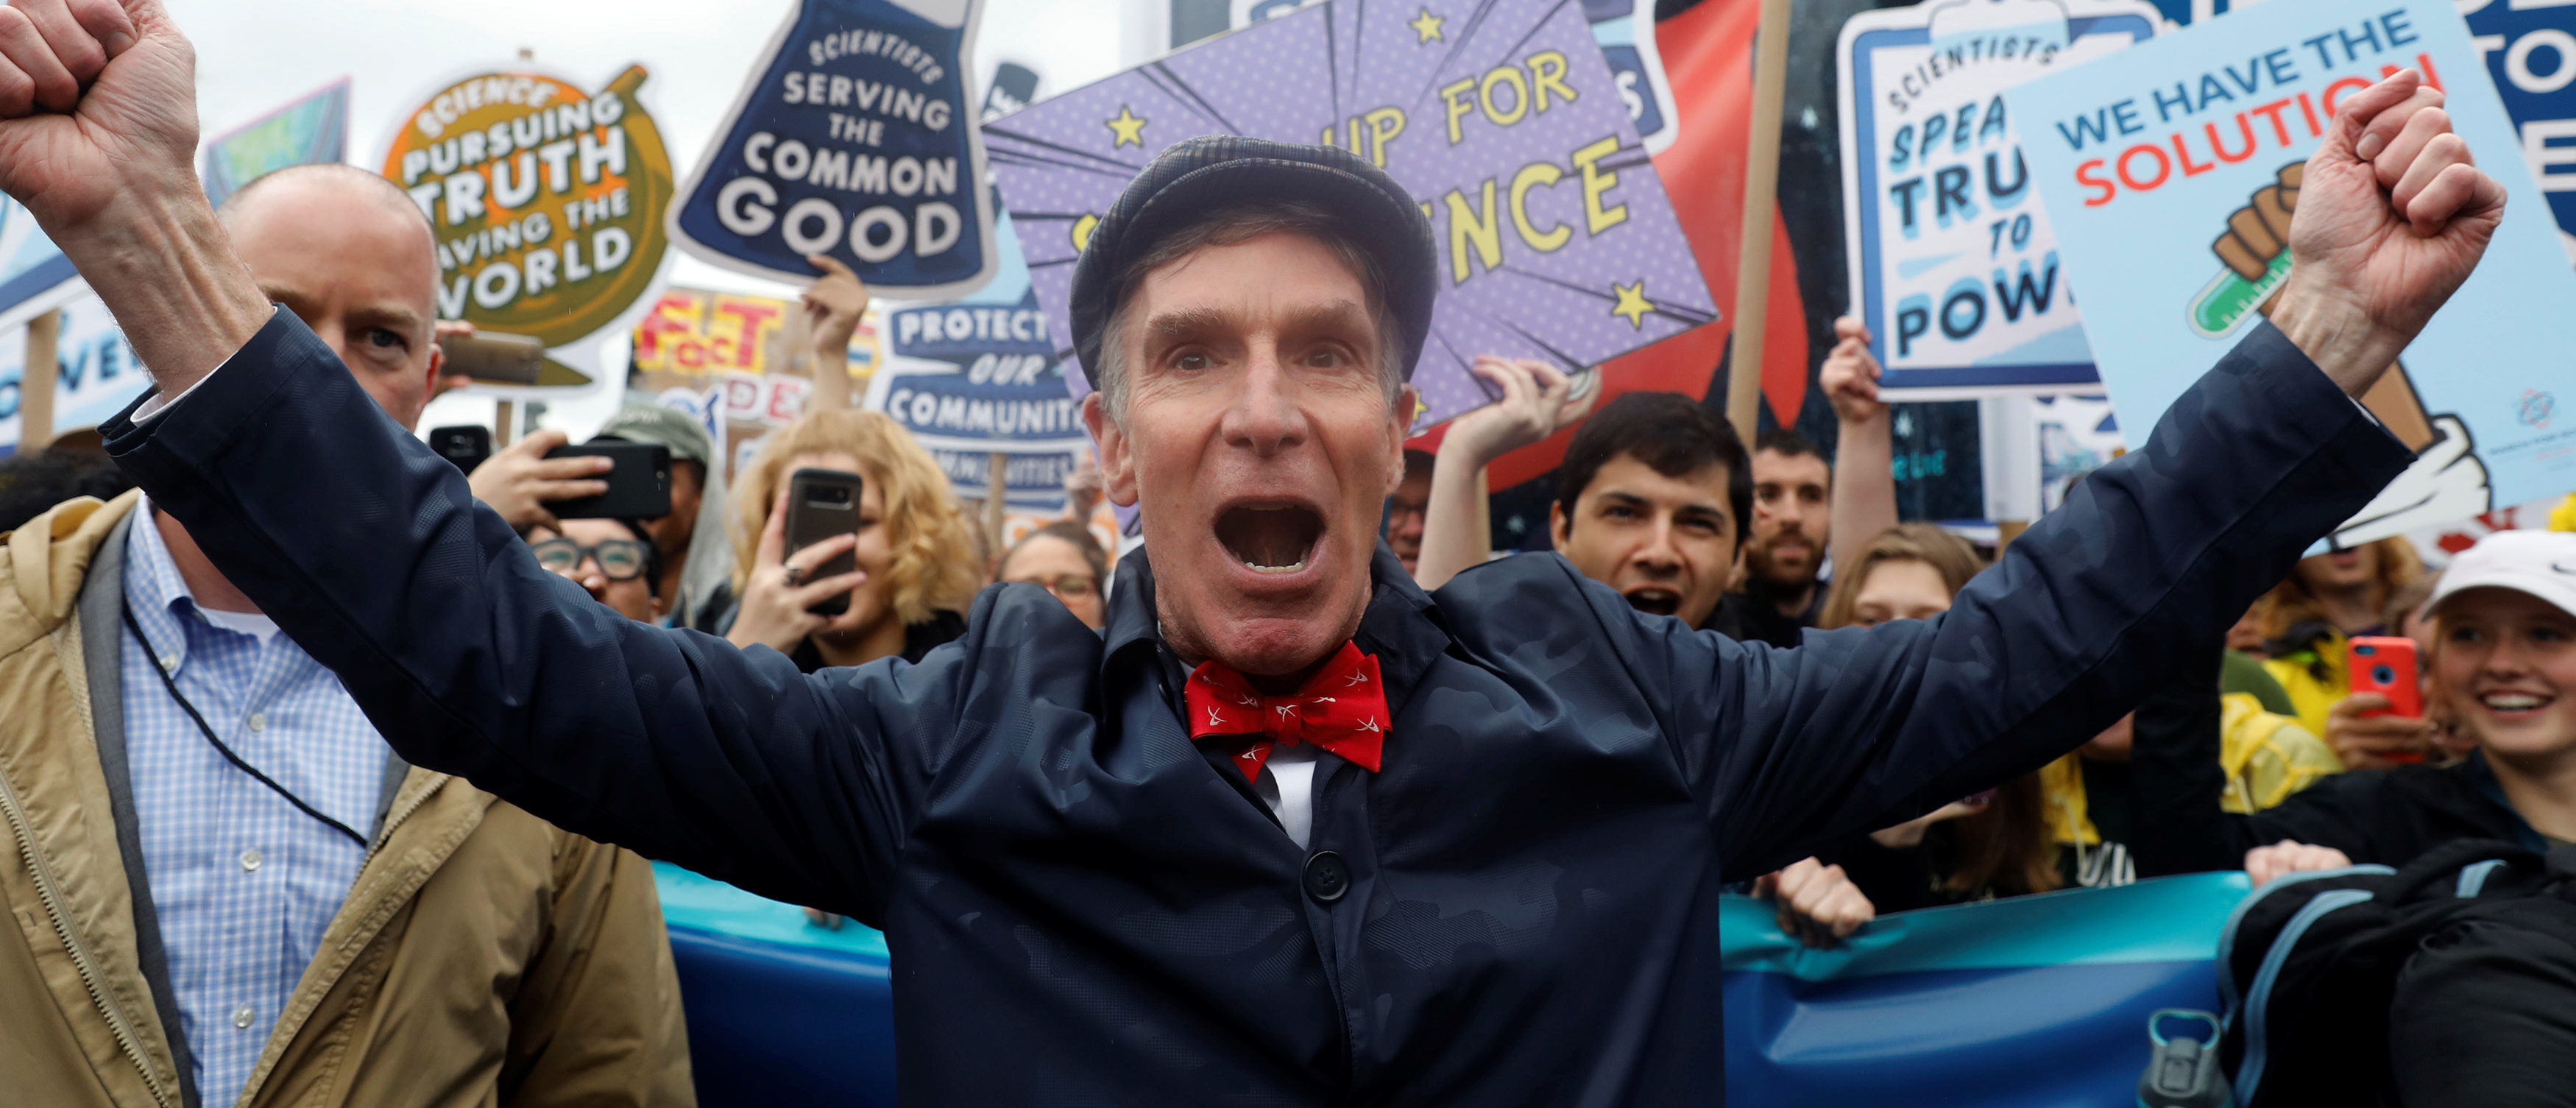 Bill Nye leads demonstrators on a march to the U.S. Capitol during the March for Science in Washington, U.S., April 22, 2017. REUTERS/Aaron P. Bernstein - RC144B052600